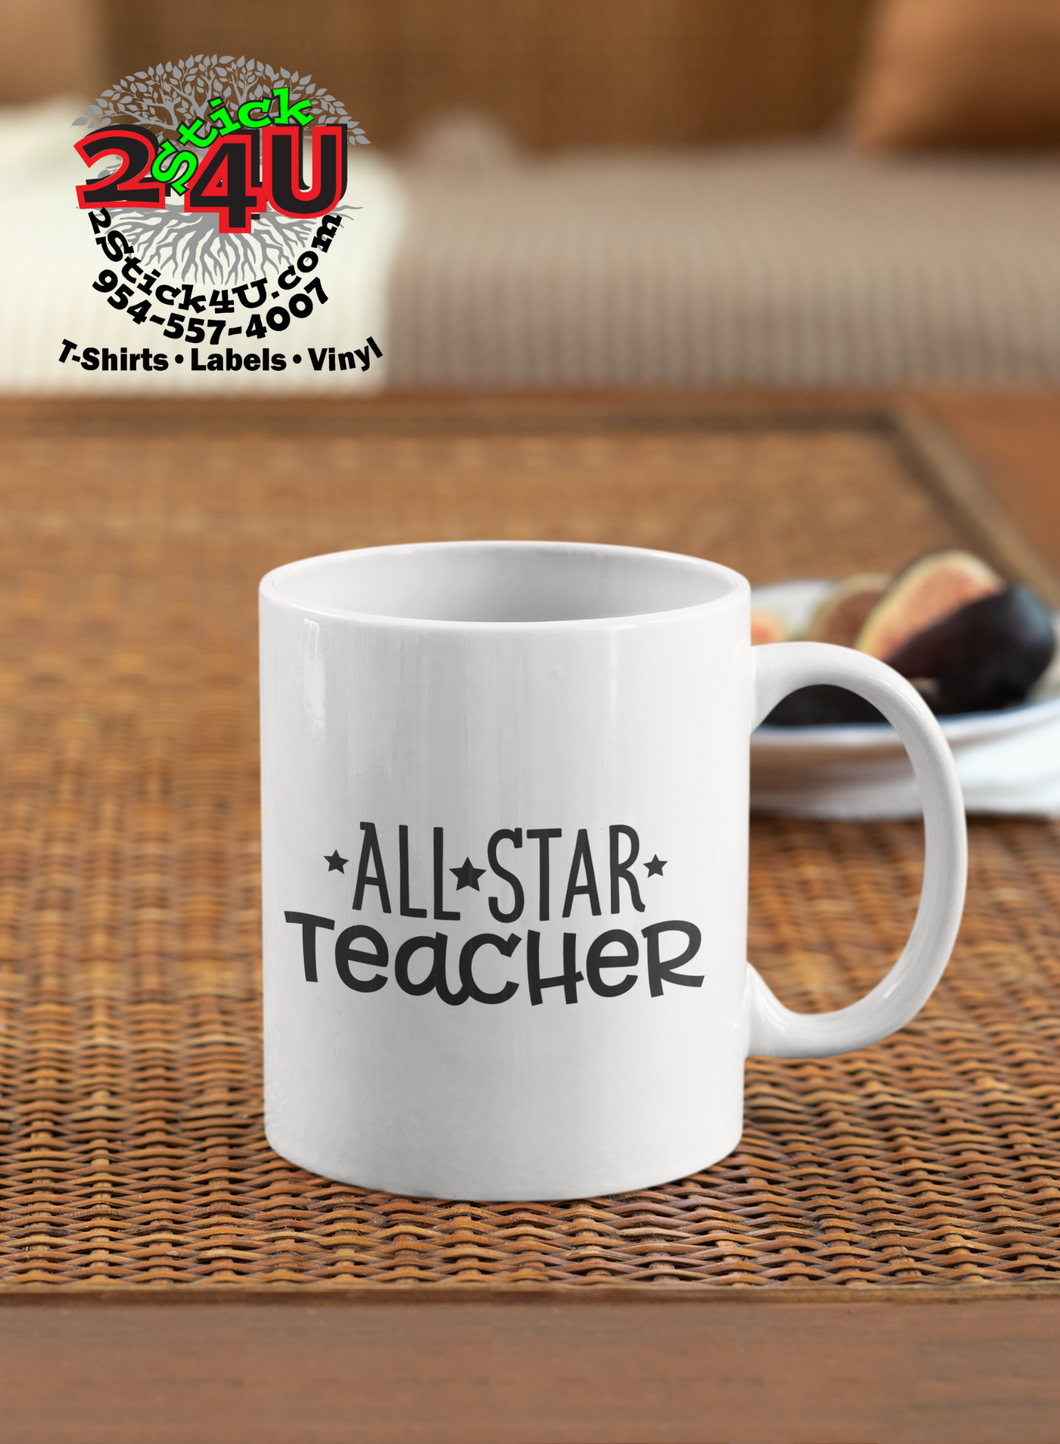 All*Star Teacher Coffee Mug - Home of Buy 3, Get 1 Free. Long Lasting Custom Designed Coffee Mugs for Business and Pleasure. Perfect for Christmas, Housewarming, Wedding Party gifts